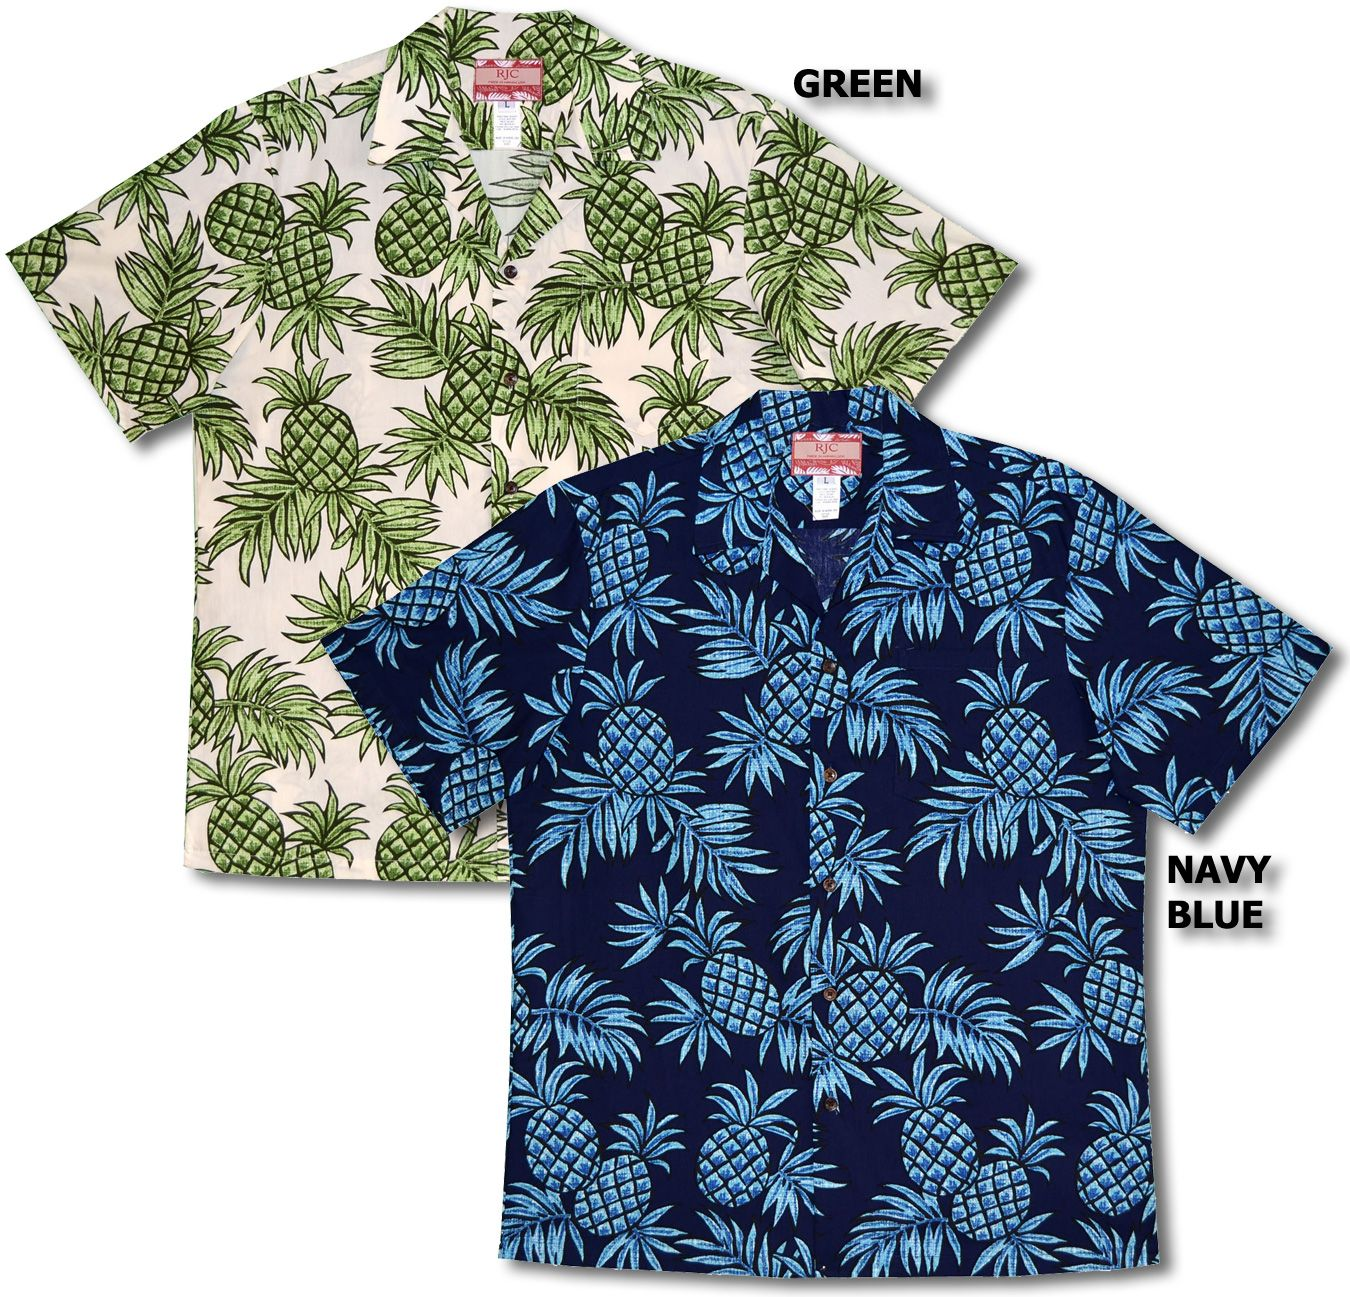 a583c4987 Ukulele Pineapple Men's Hawaiian (RJC) R. J. Clancey Shirt created in Black,  Burgundy and Blue. MauiShirts search box stock numbe…